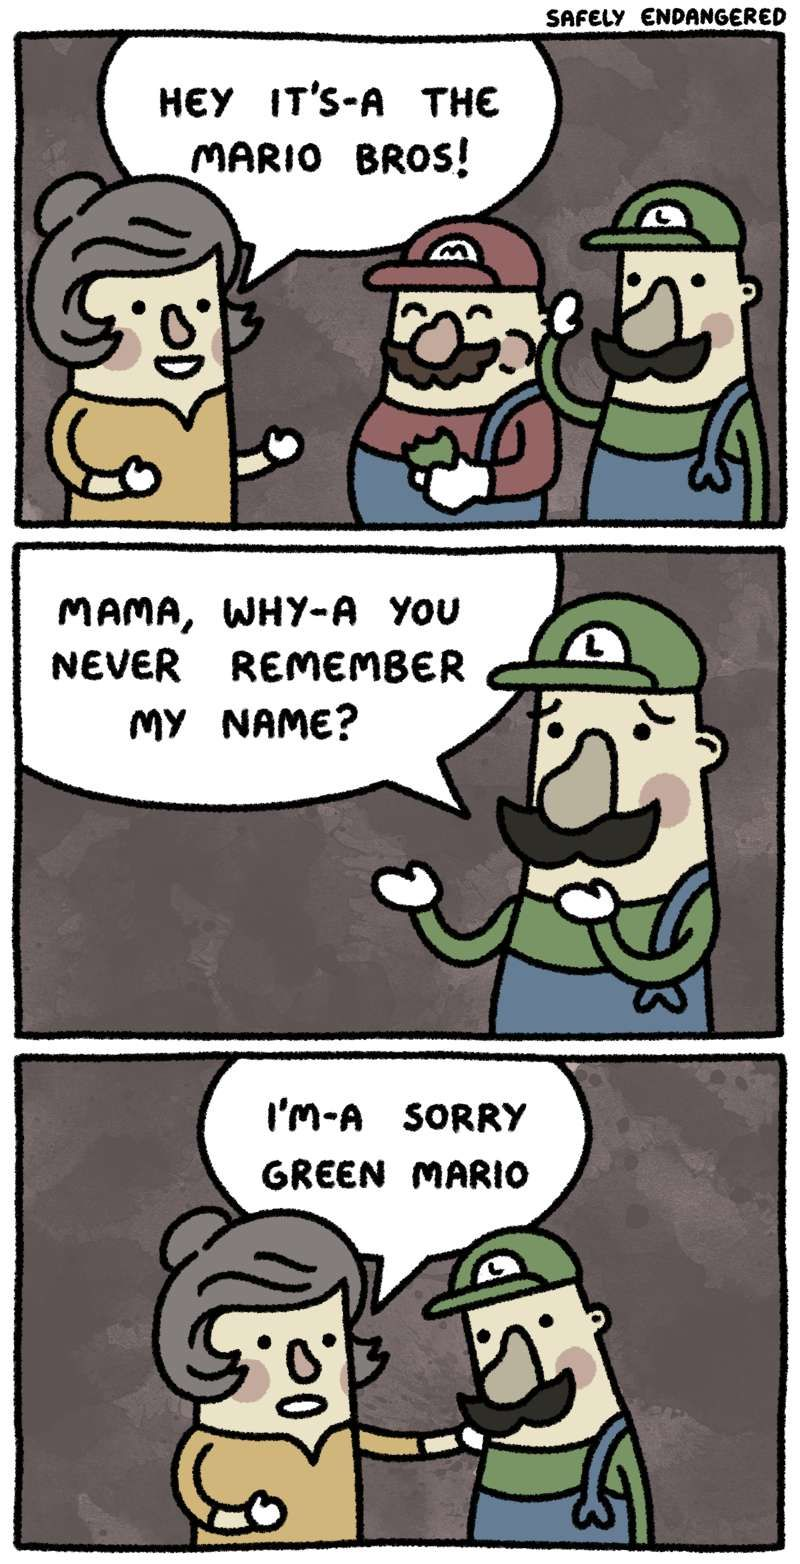 Safely Endangered The Mario Bros Tapastic Hilarious Funny Pictures Safely Endangered